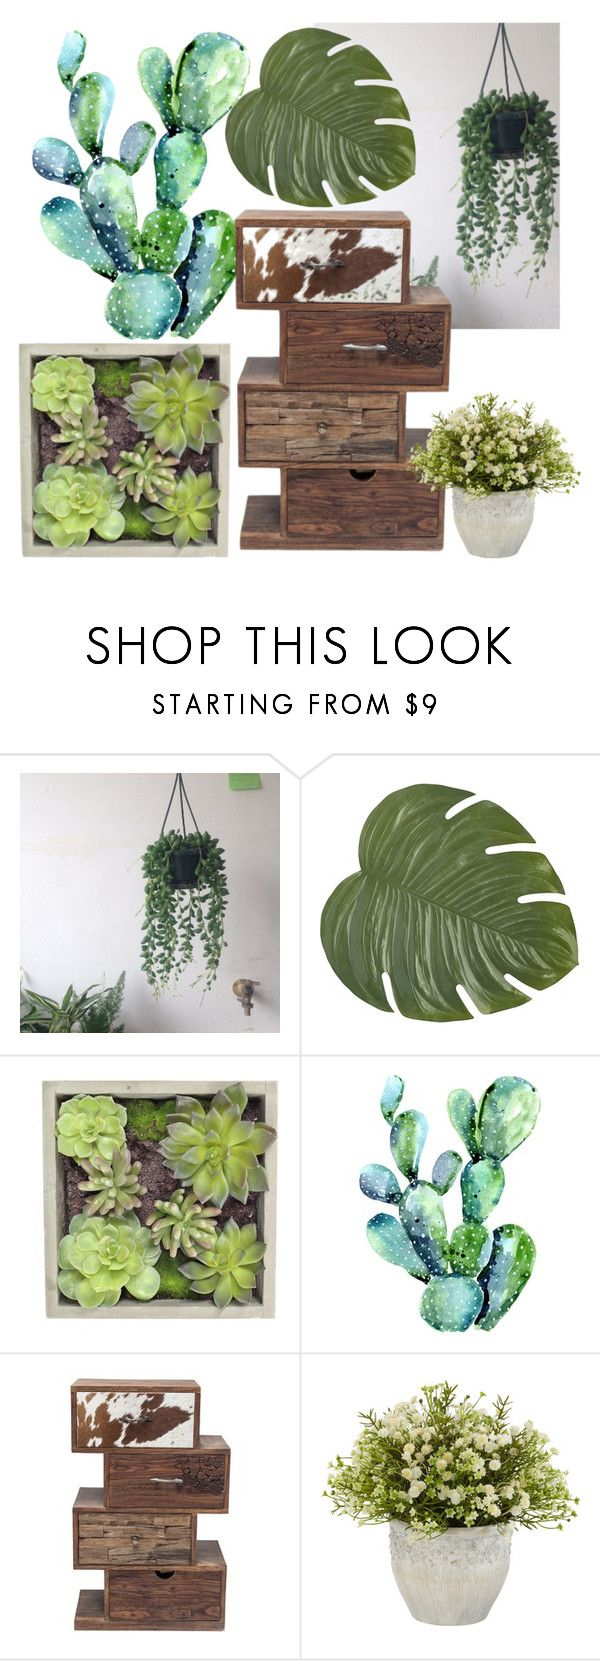 """""""plants #2"""" by herminedanger ❤ liked on Polyvore featuring interior, interiors, interior design, home, home decor, interior decorating, Pier 1 Imports, Gold Eagle, plants and planters"""